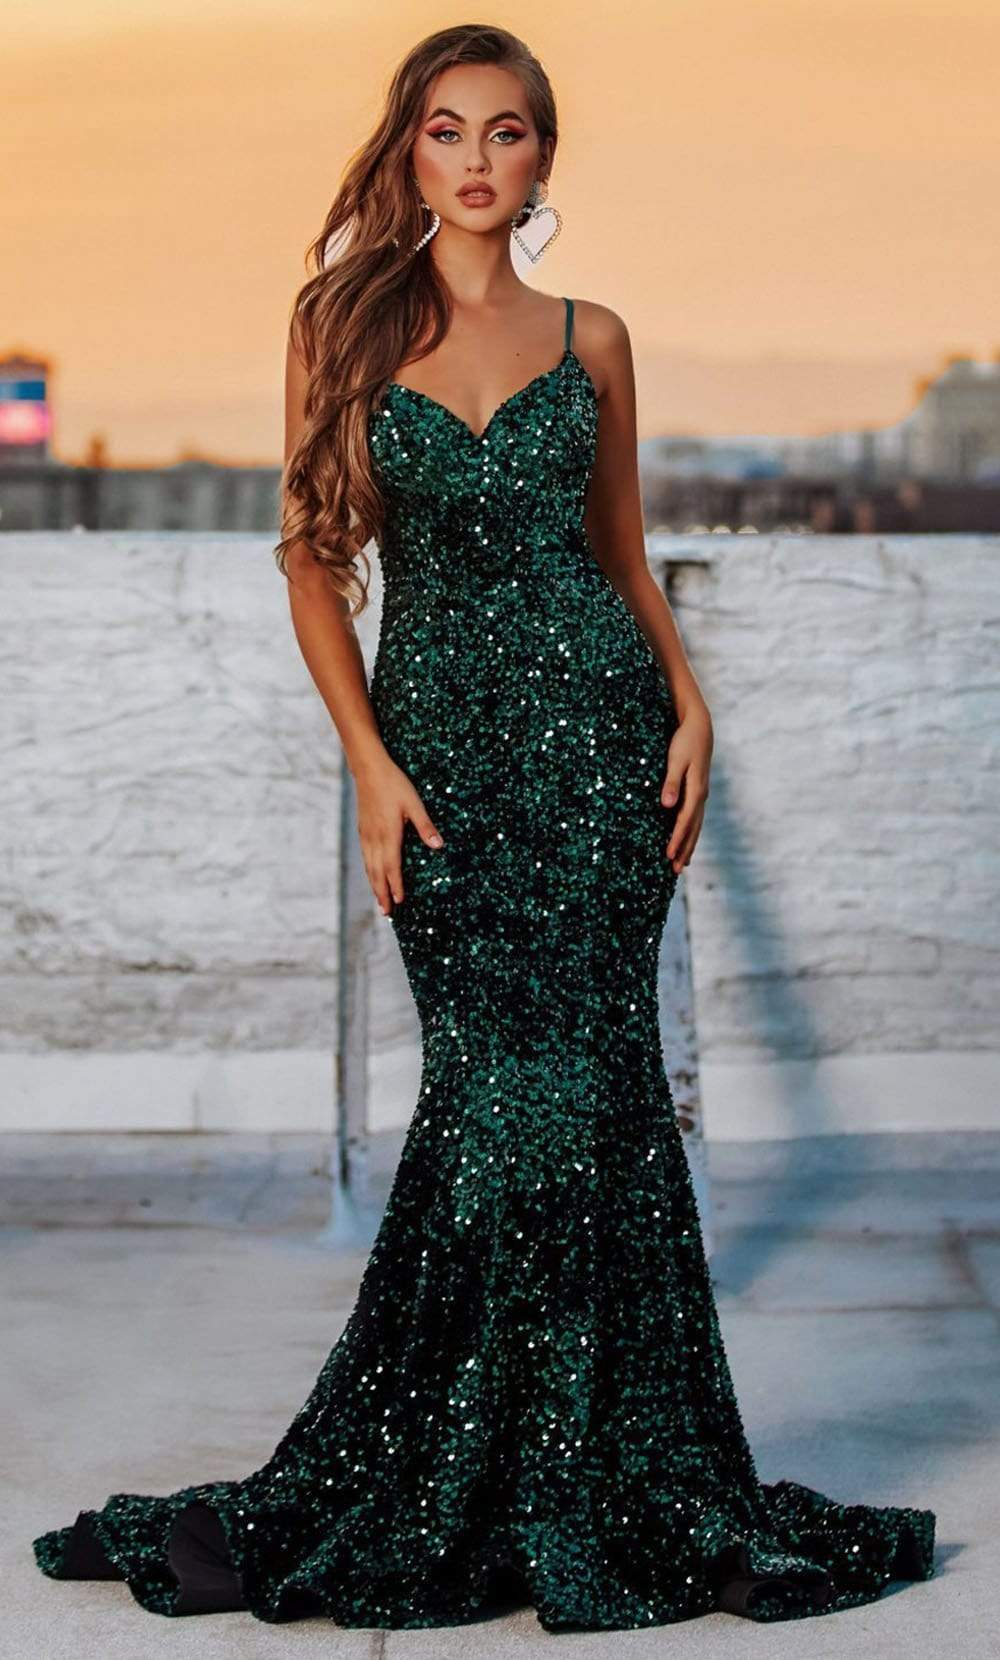 Portia and Scarlett - PS21030 Spaghetti Strap Full Sequin Mermaid Gown from Portia and Scarlett